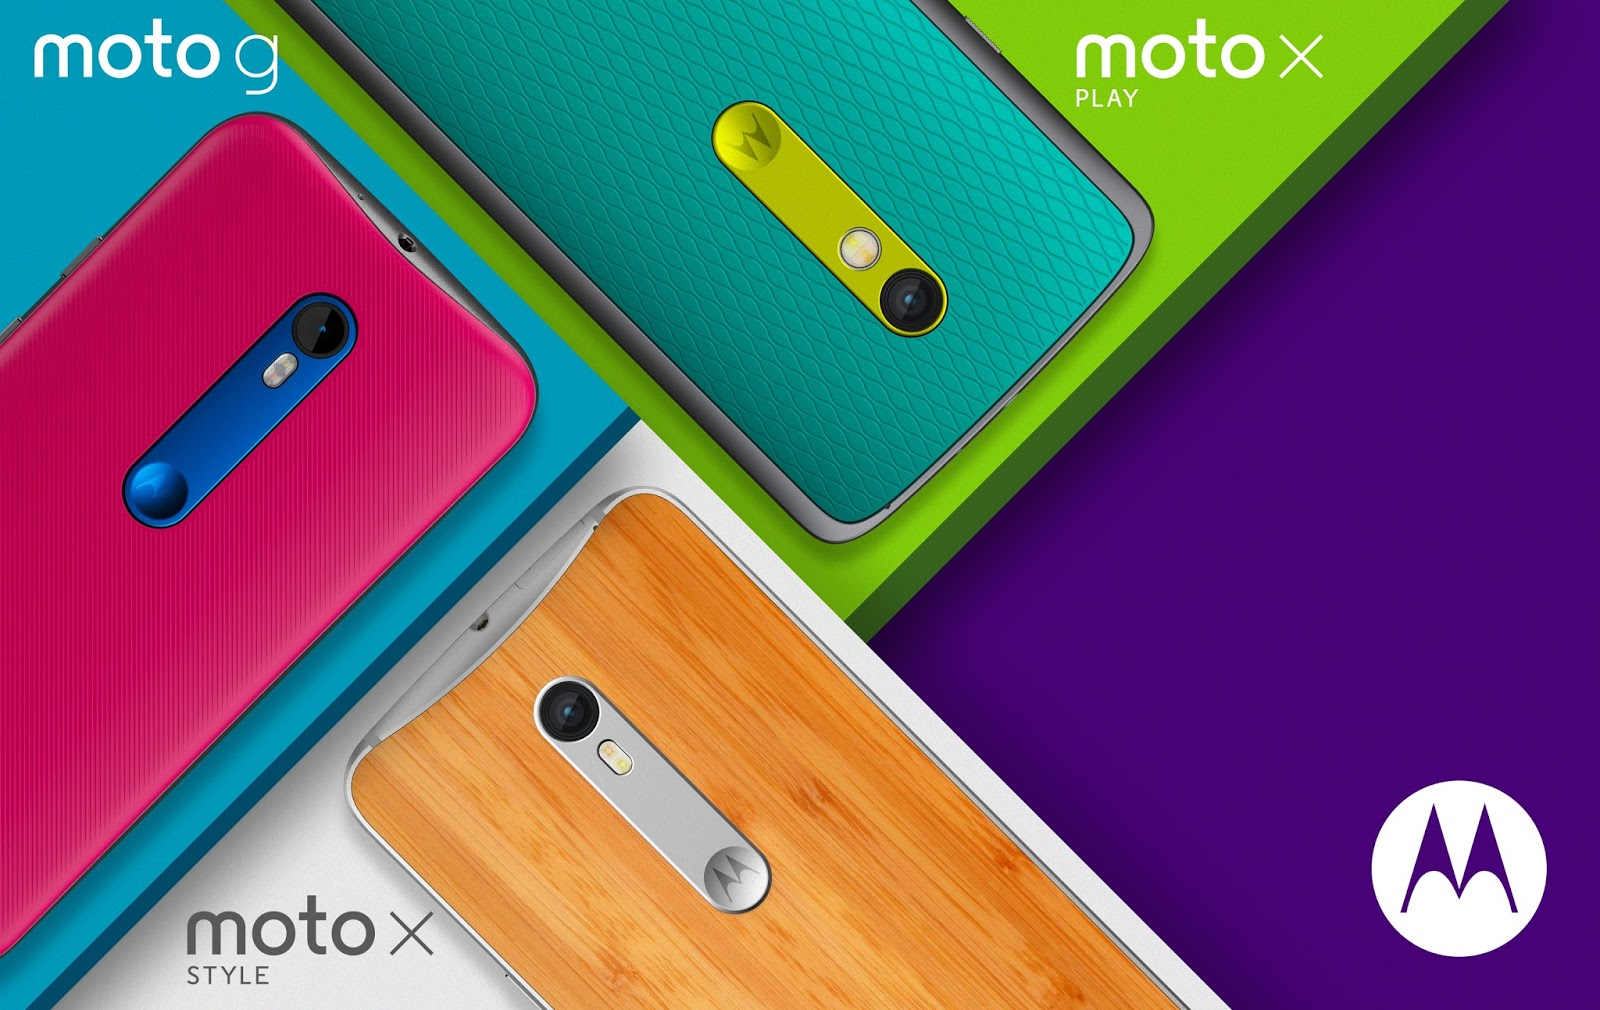 Motorola announces 5.7-inch Moto X Style, Moto X Play and an updated Moto G!